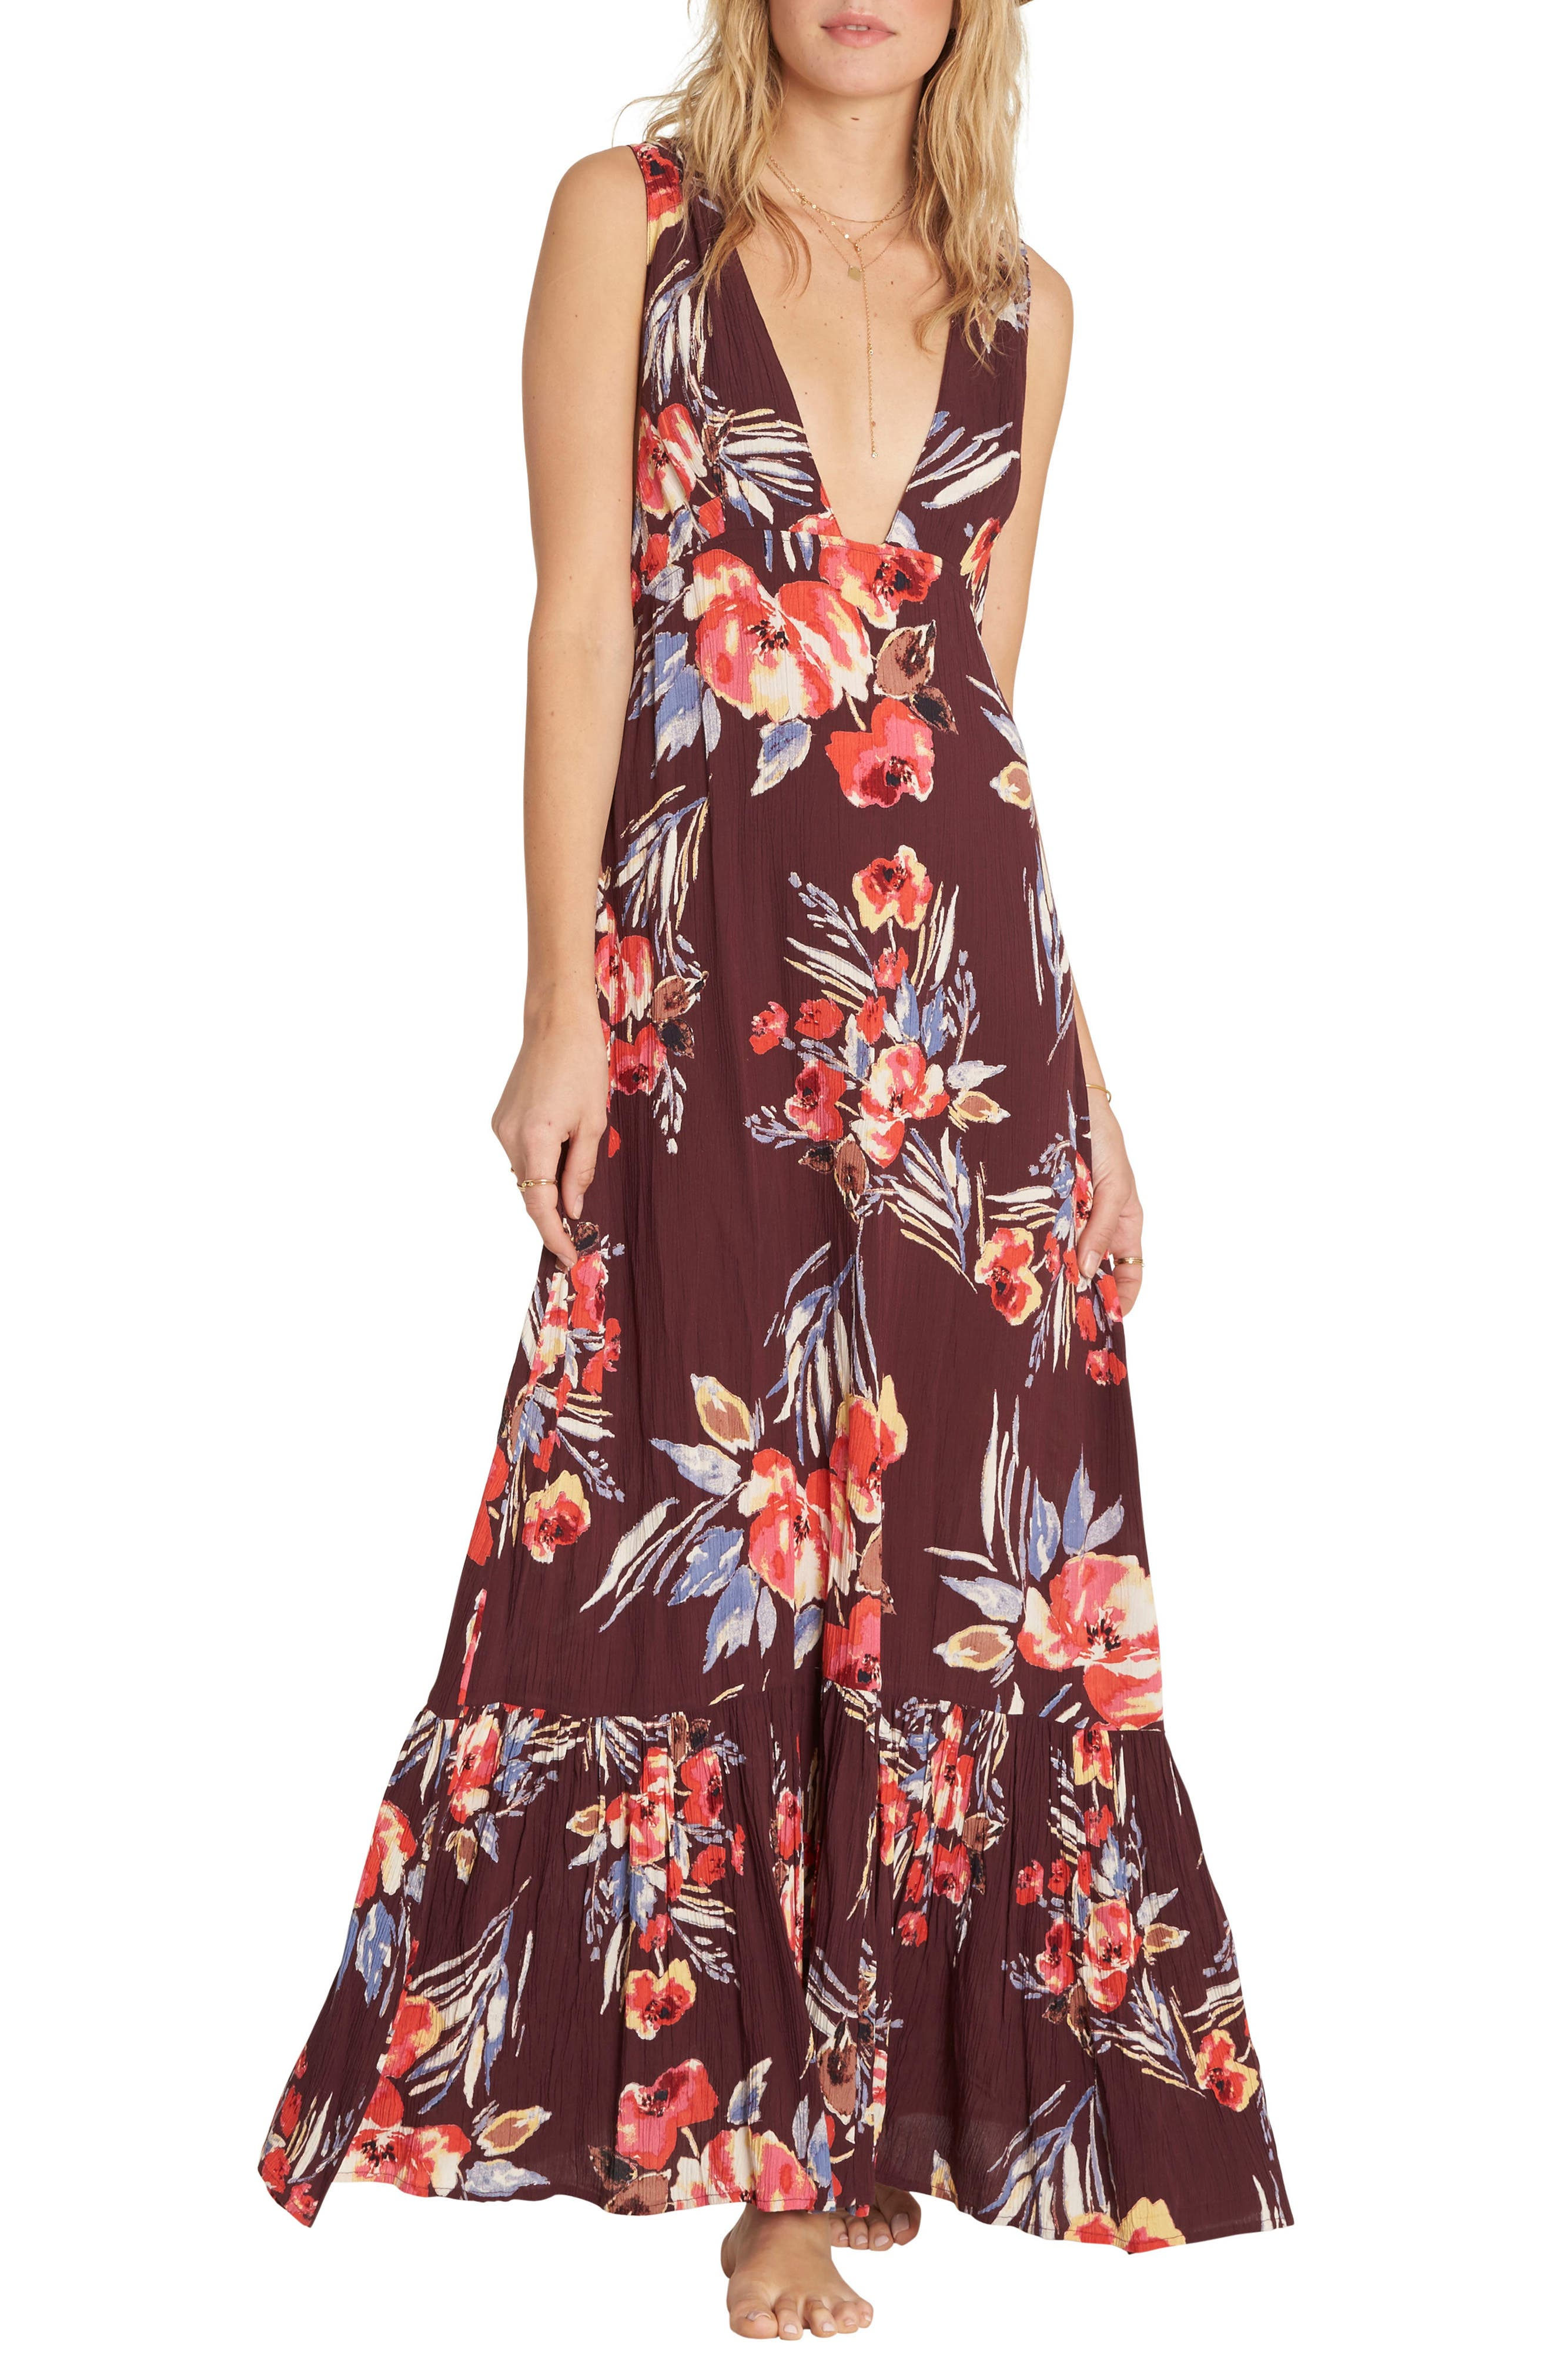 Main Image - Billabong Awoke for Waves Floral Print Maxi Dress